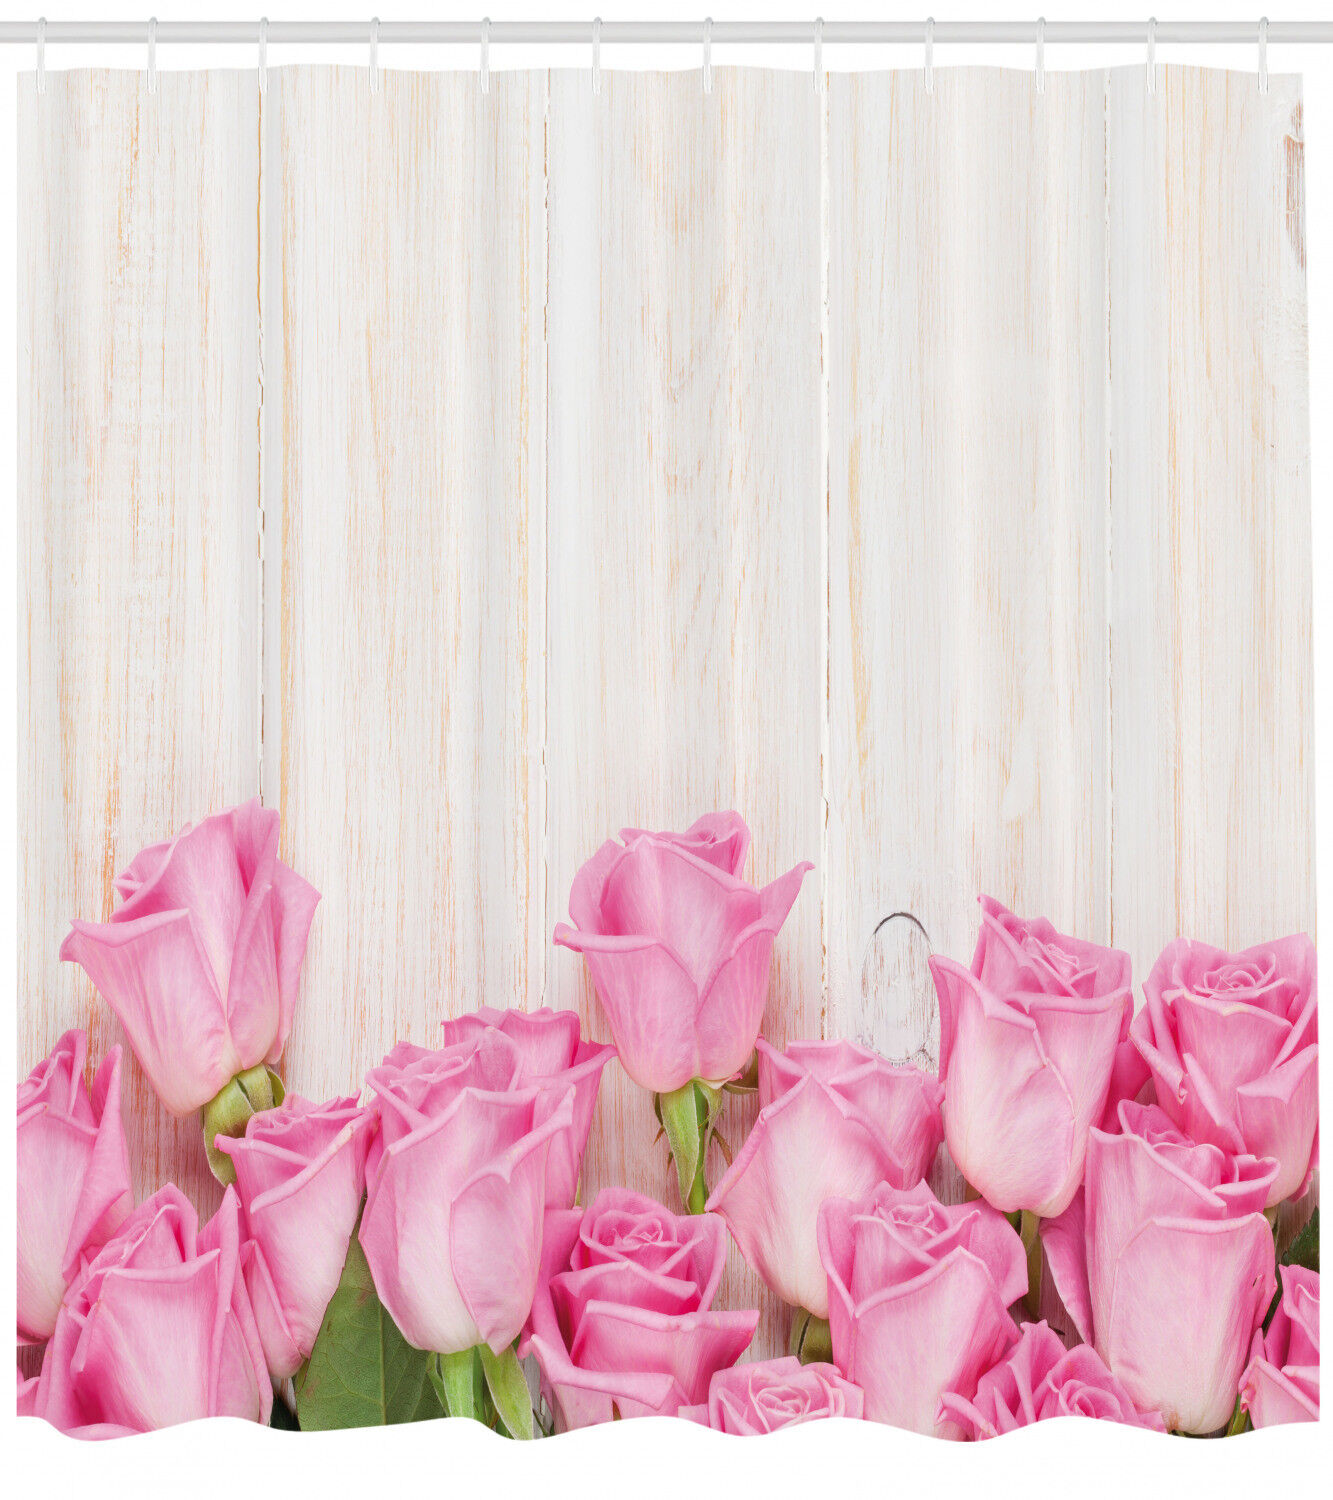 Rosa Shower Curtain Flowers On Wood Planks Print For Bathroom 75 Inches Long 9d788d